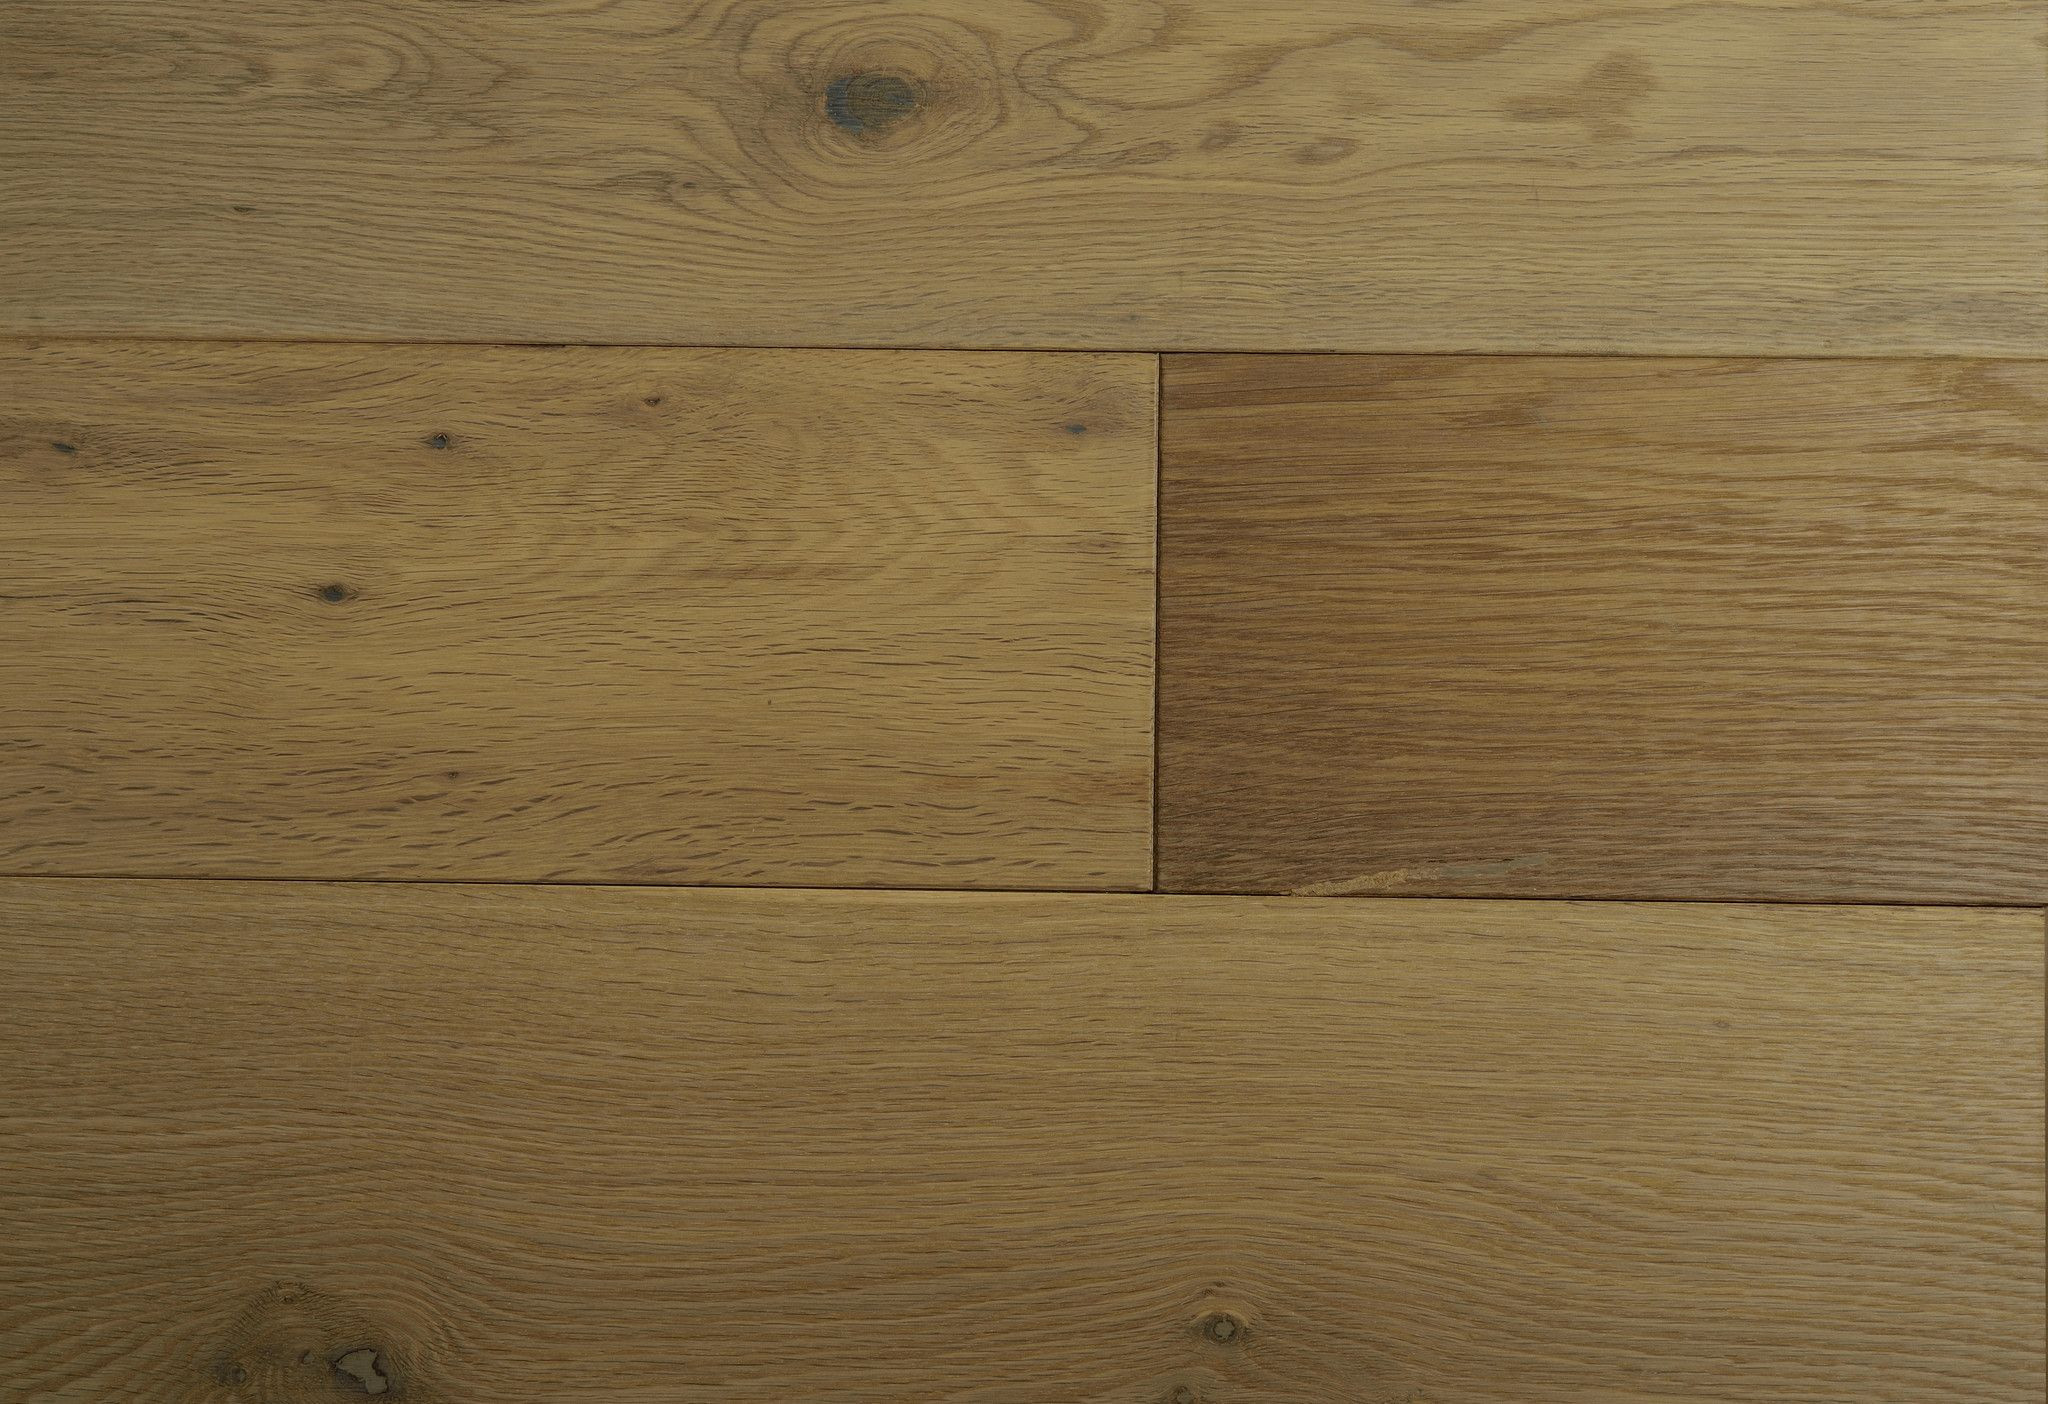 wide plank hardwood flooring canada of everbrite white oak smoked solid 3 4 white oak wax and products inside everbrite white oak smoked solid 3 4